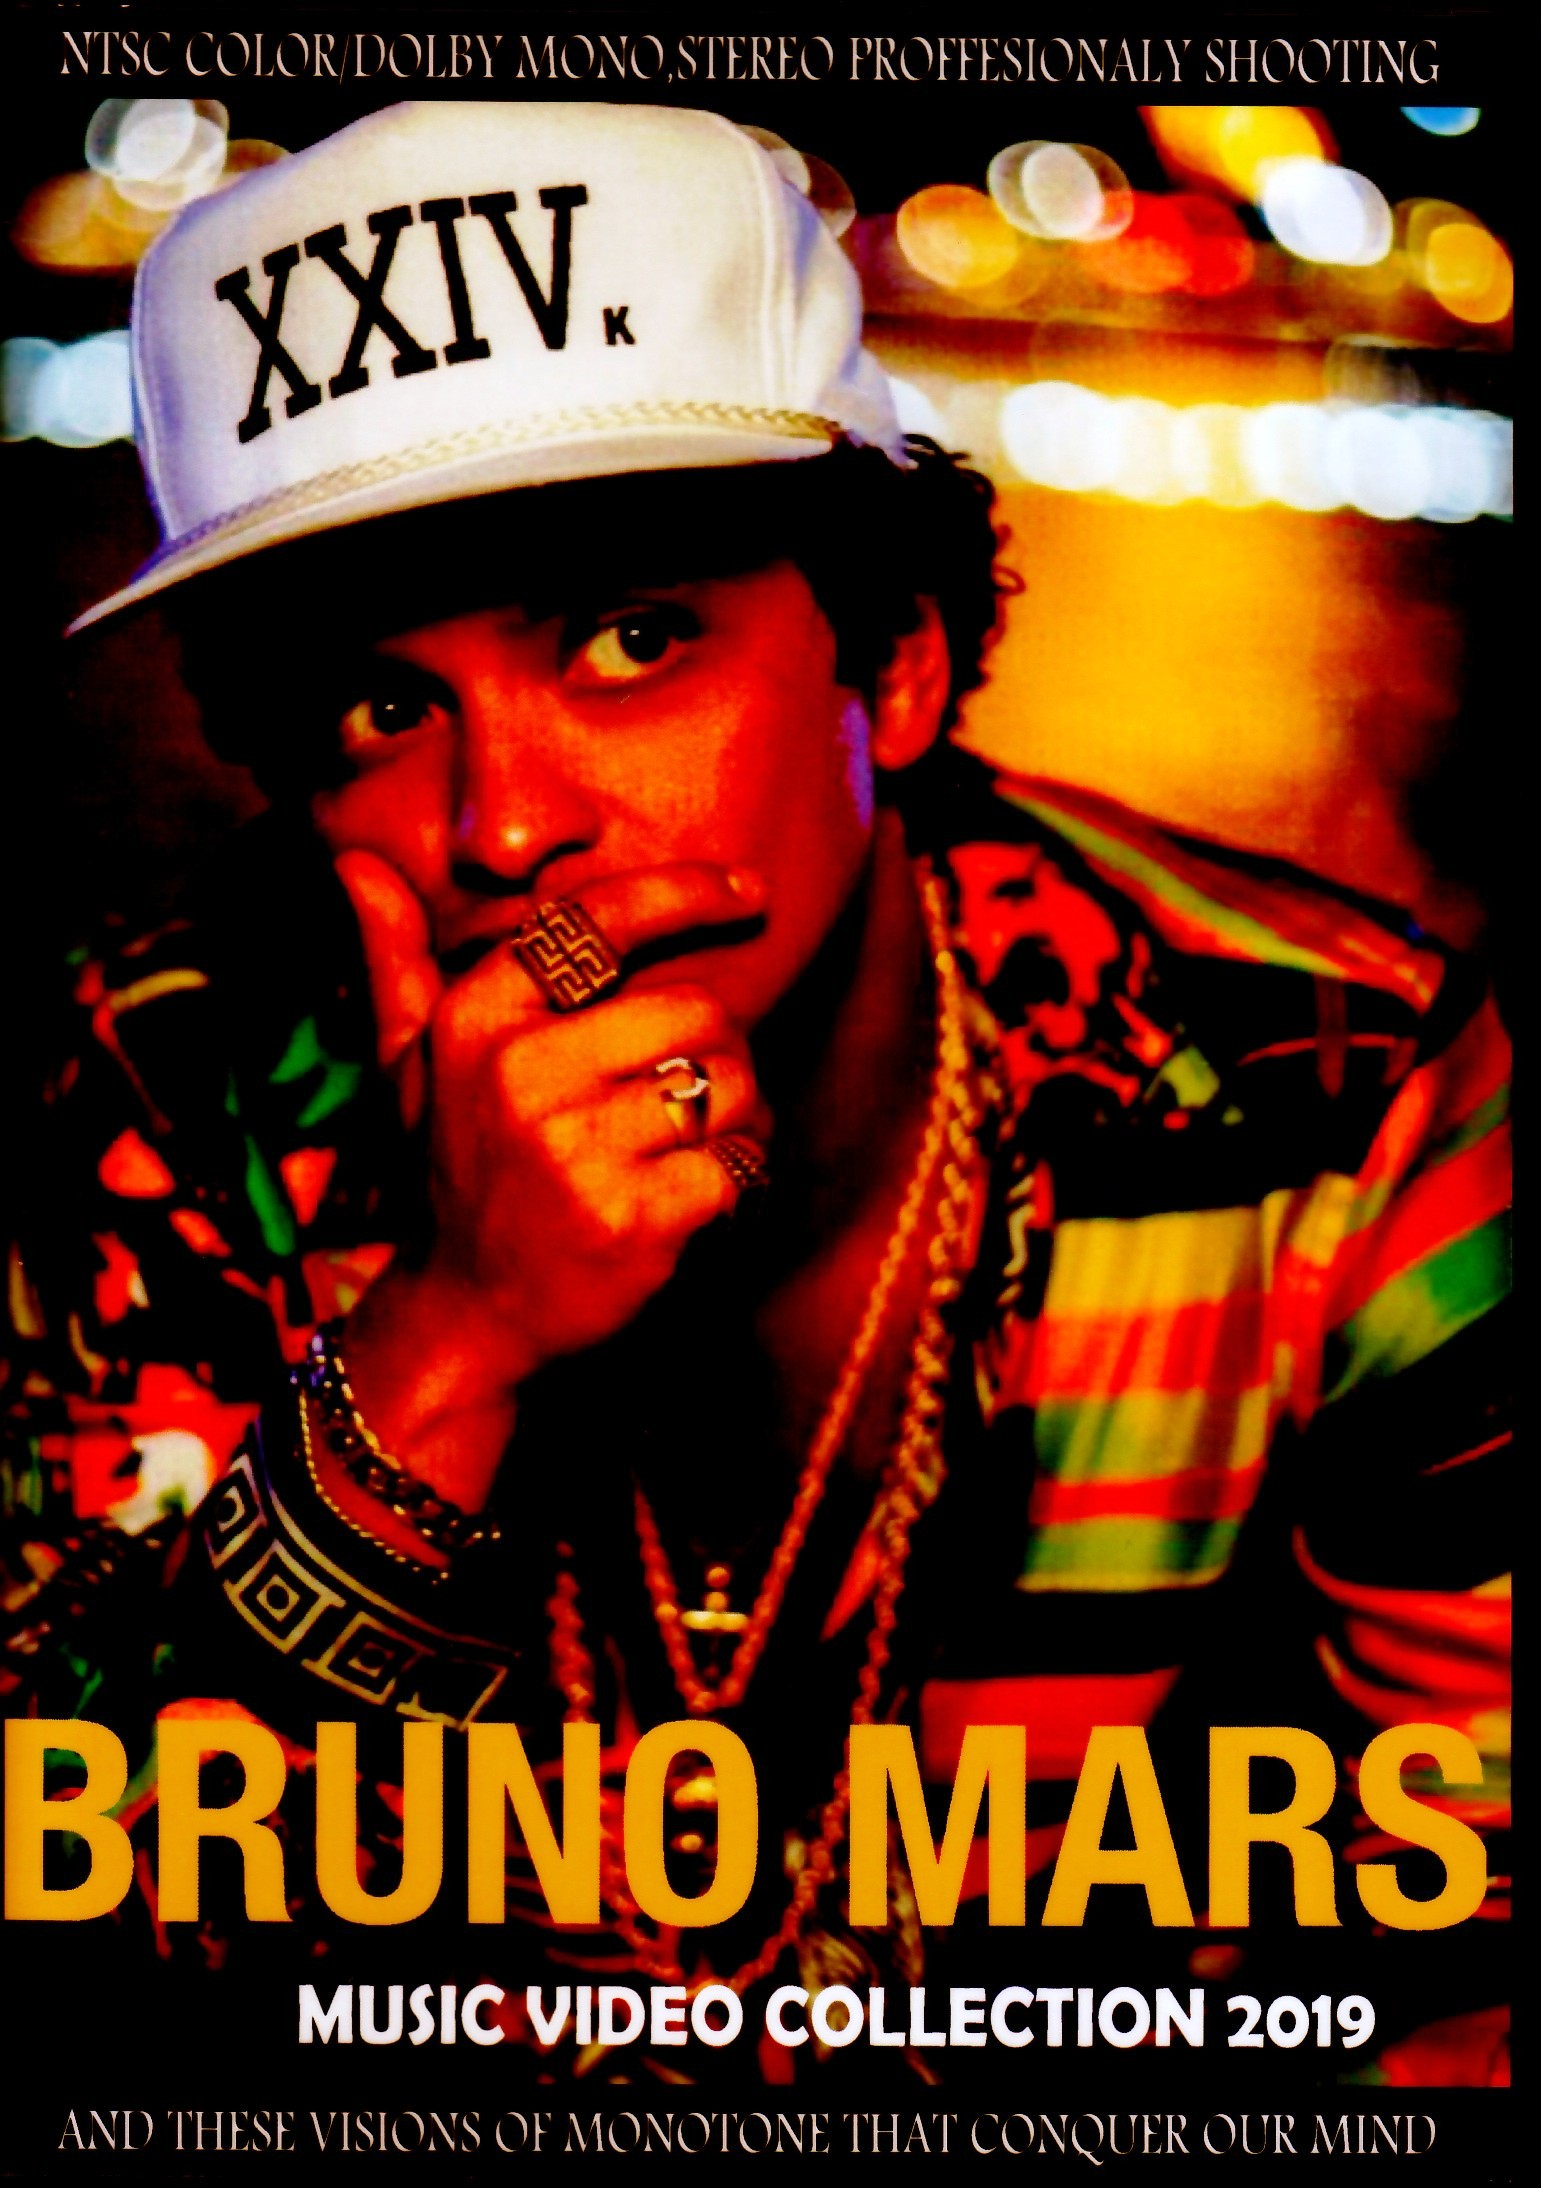 Bruno Mars ブルーノ・マーズ/Music Video Collection 2019